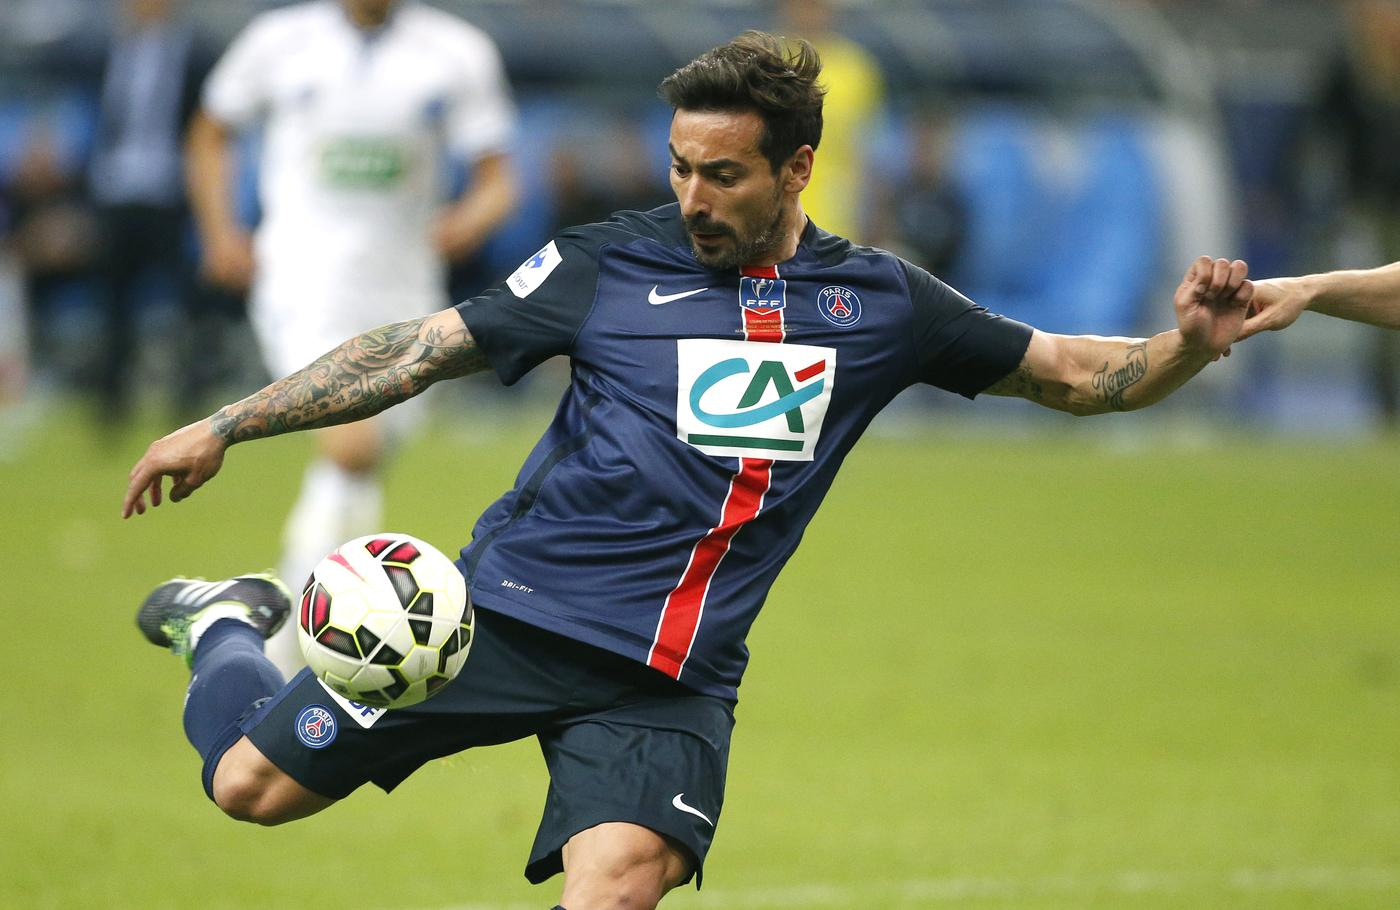 Boost for Tottenham Hotspur as PSG 'want to sell £10m-rated Ezequiel Lavezzi in summer transfer window'